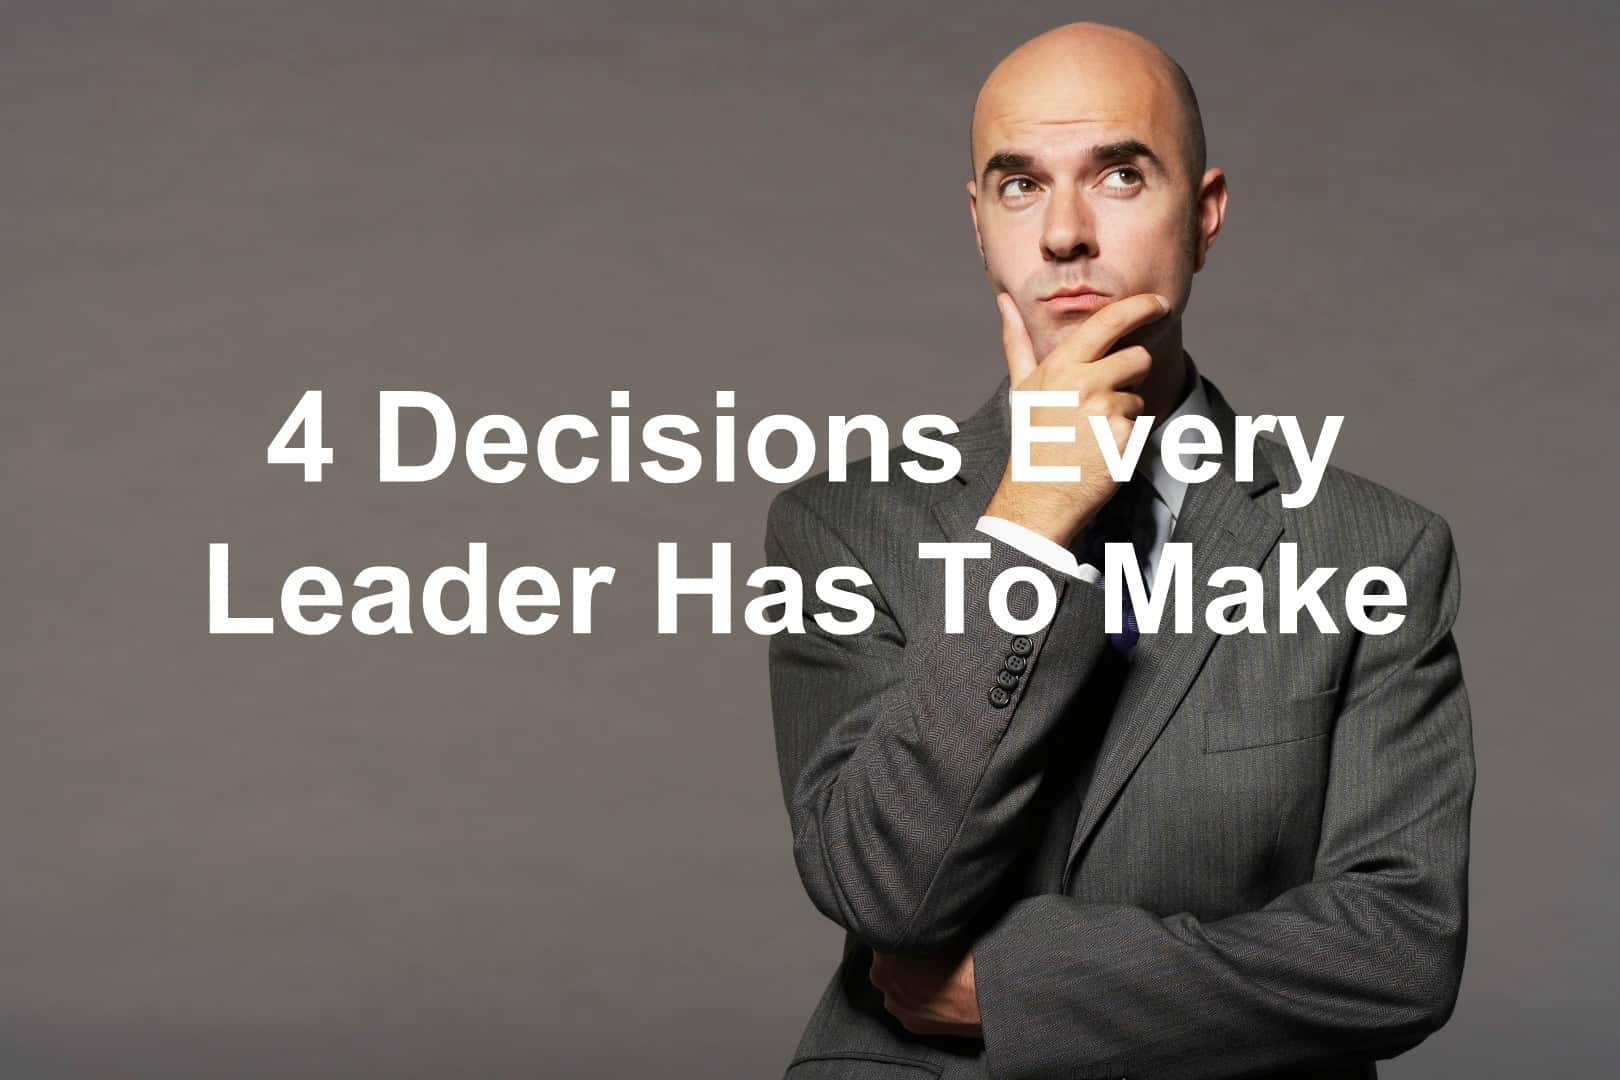 What decisions do you have to make as a leader?